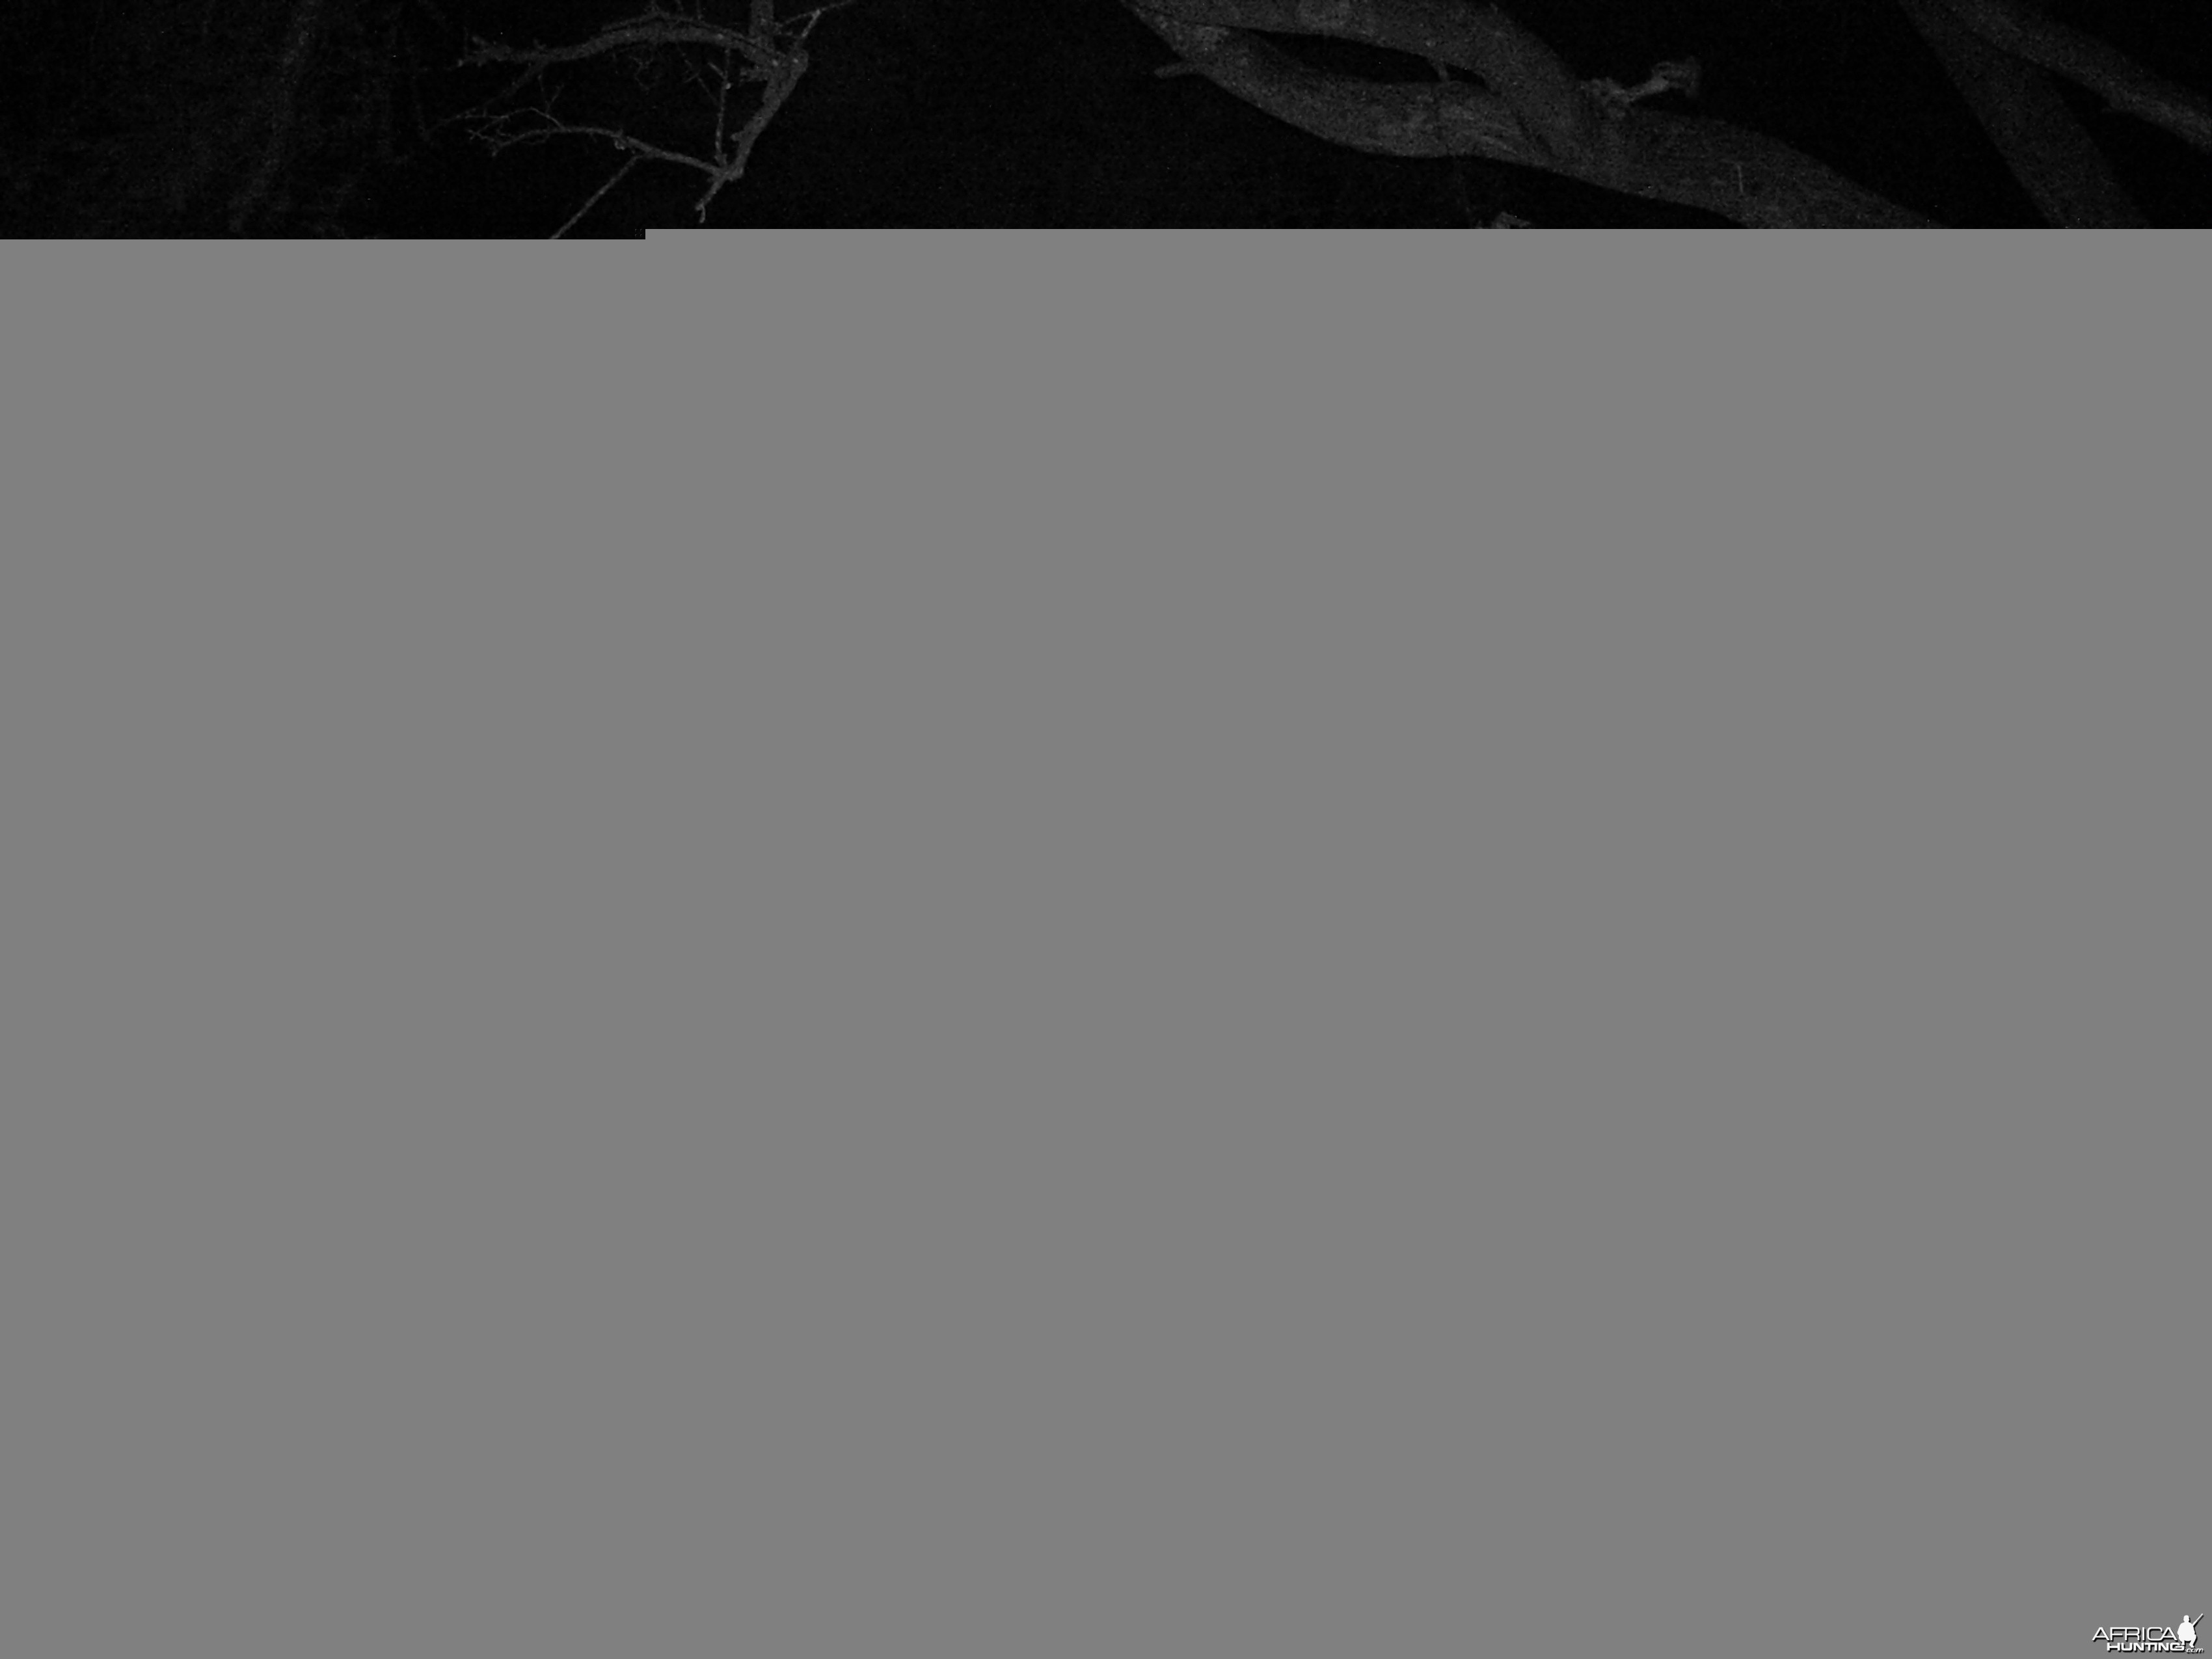 Brown Hyena Trail Camera